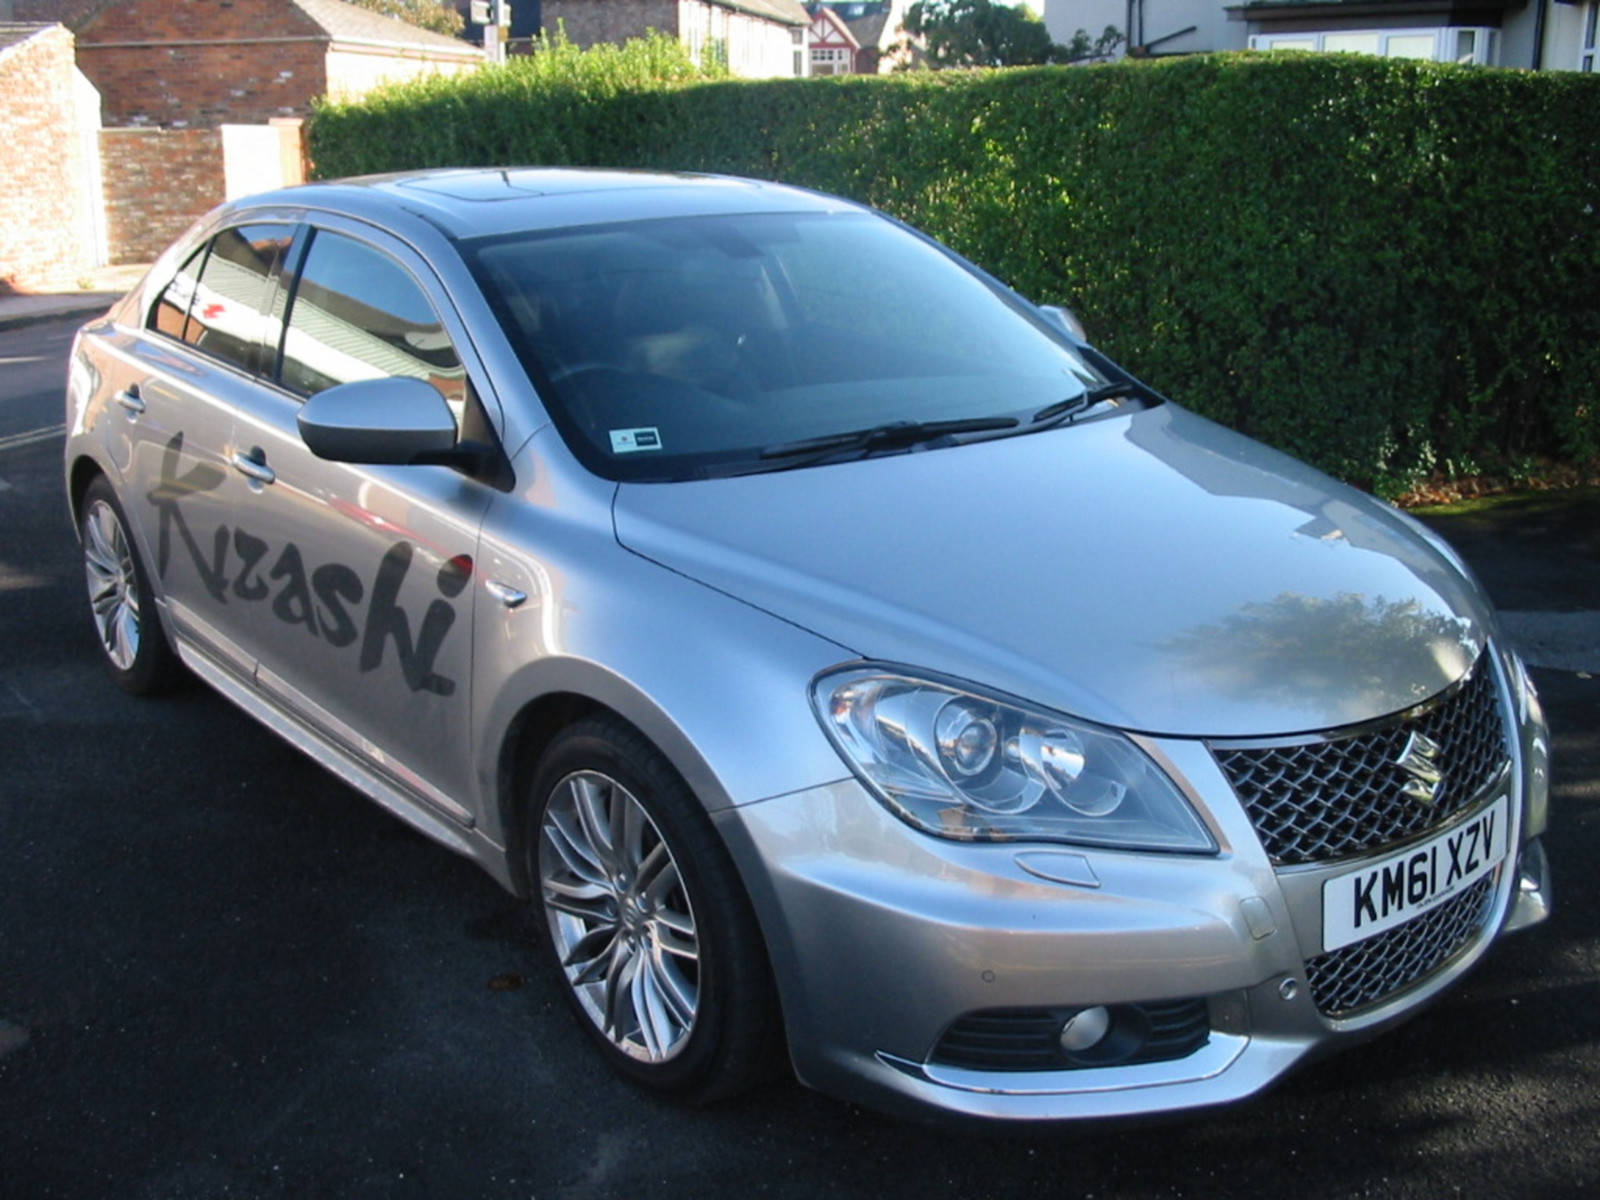 Suzuki Kizashi kizashi